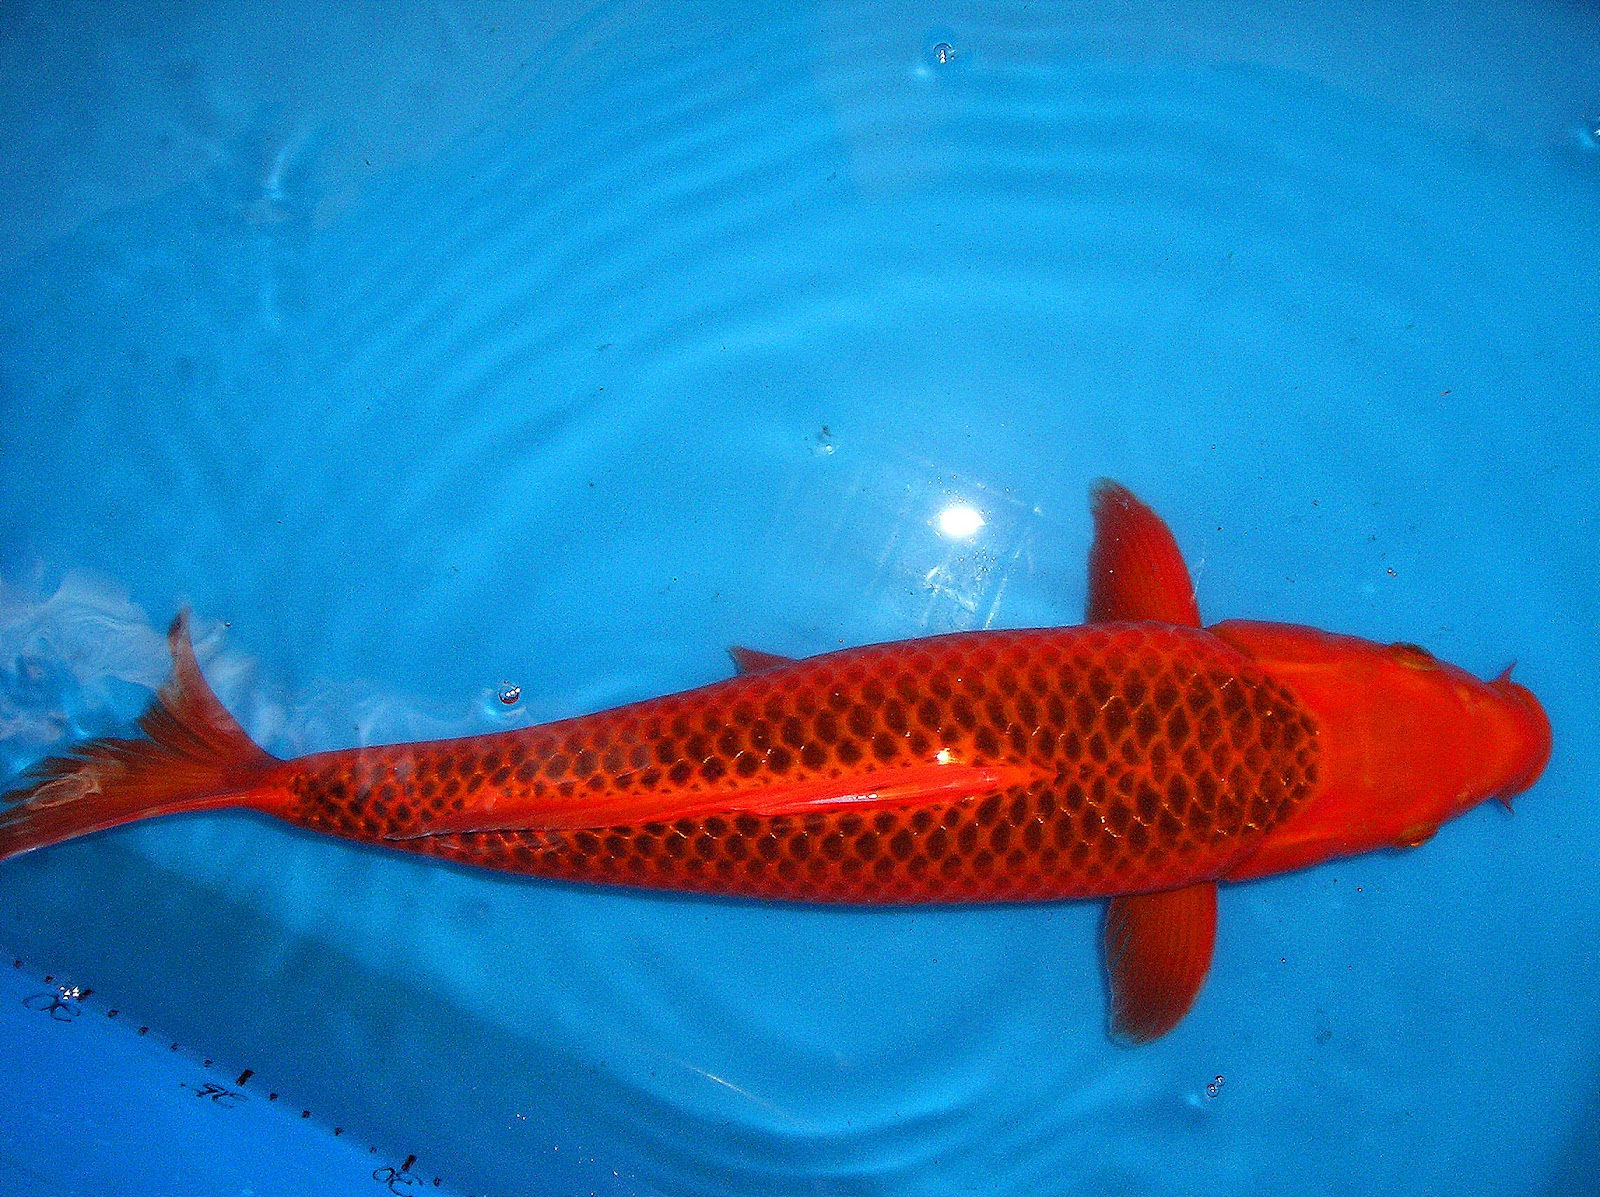 Zenkoi marketing imported japanese carp koi fish for Koi carp farm